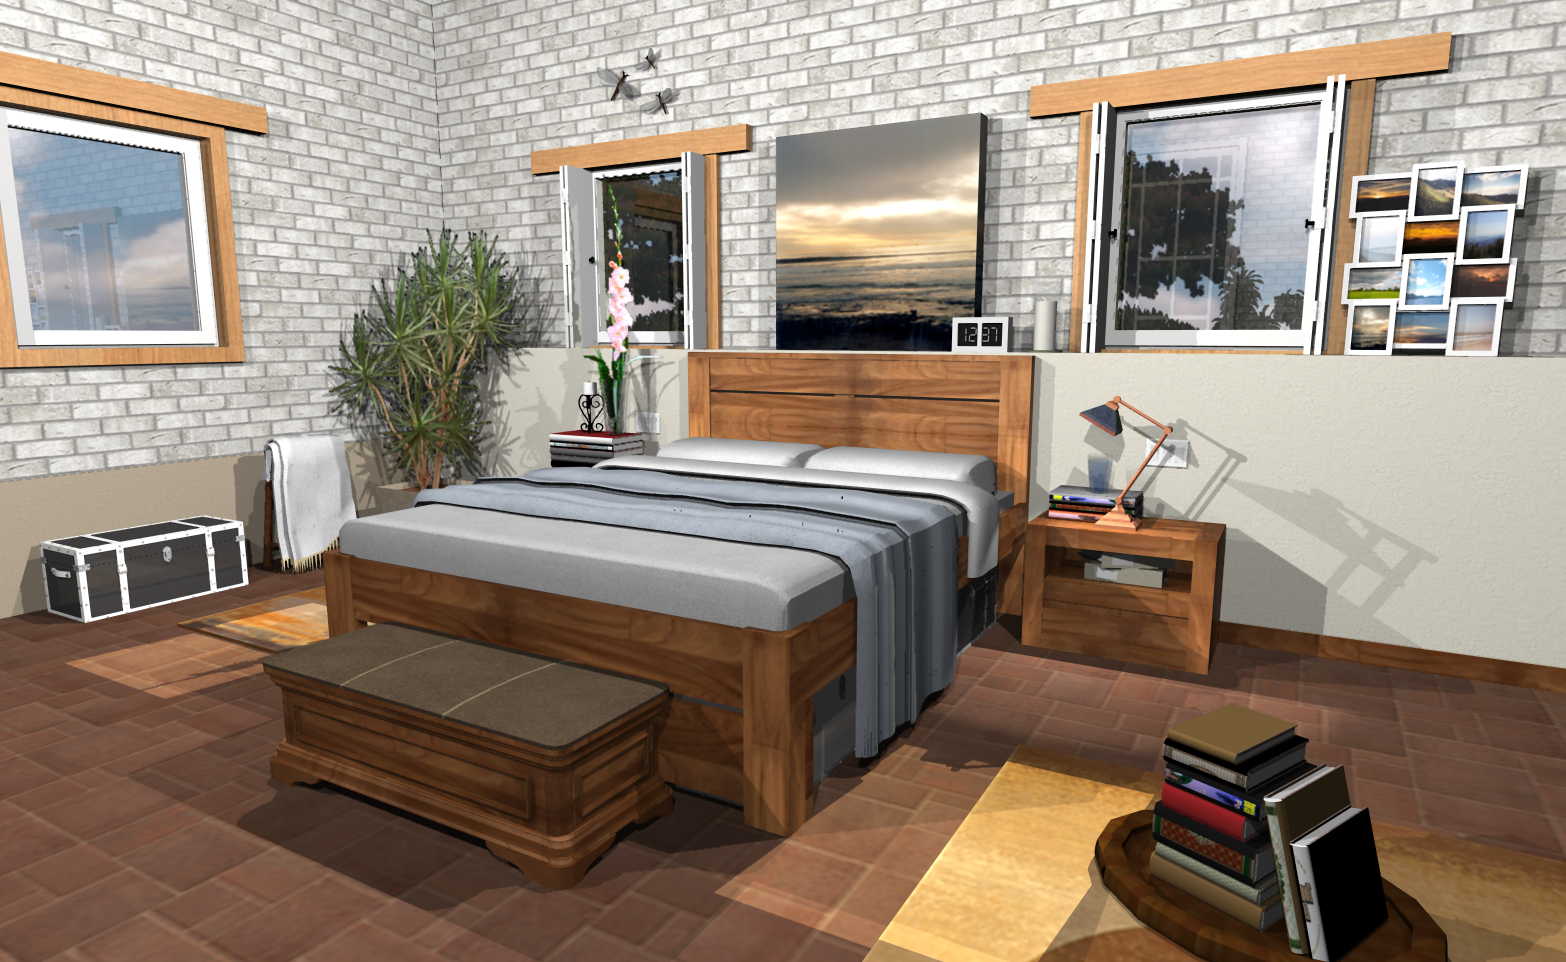 Architecte 3d ultimate 2015 le logiciel ultime d for Maison architecte interieur